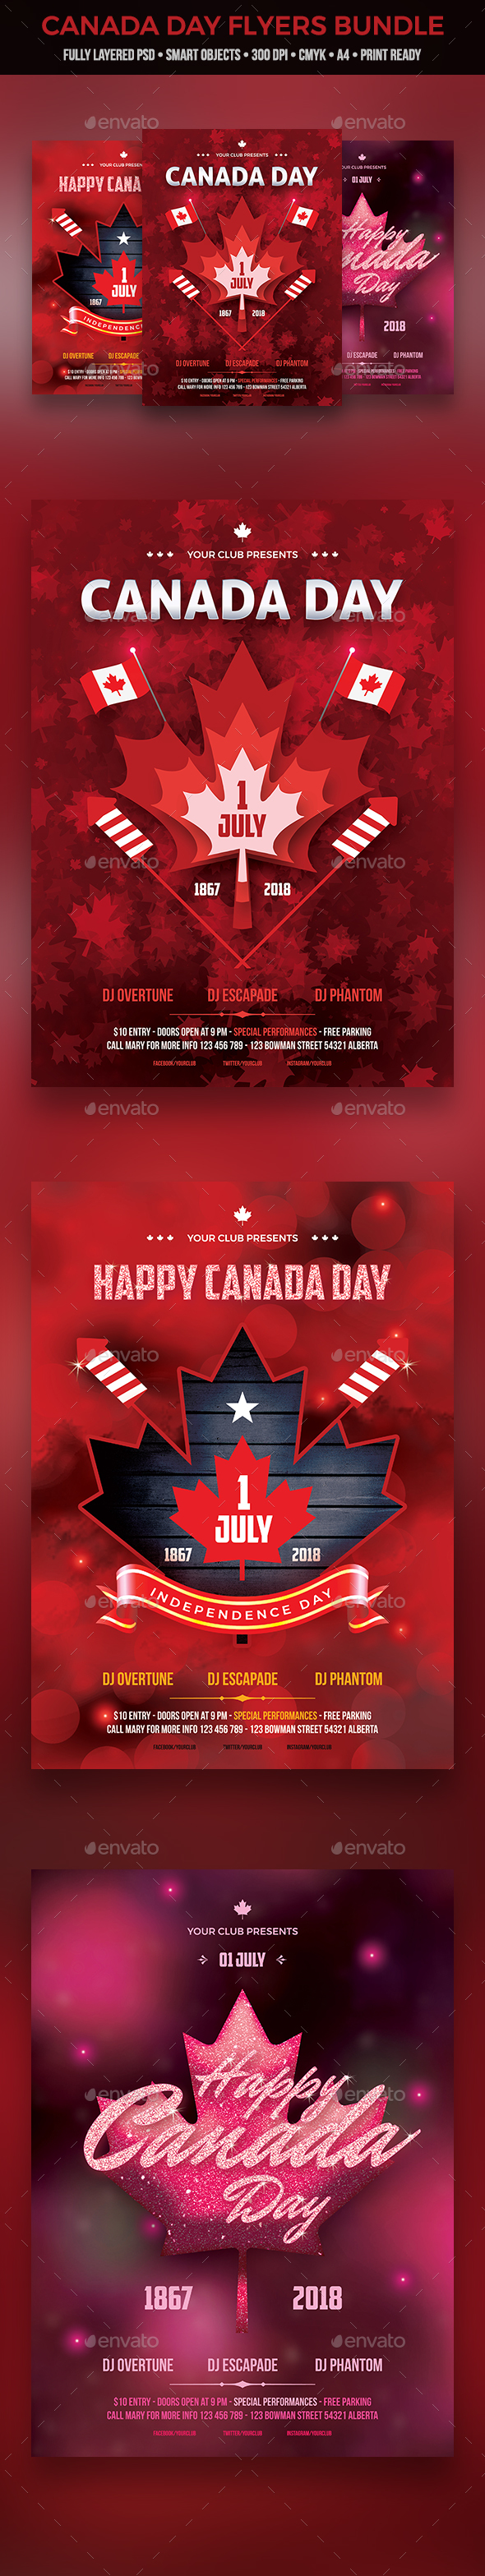 Canada Day Flyer Bundle - Clubs & Parties Events